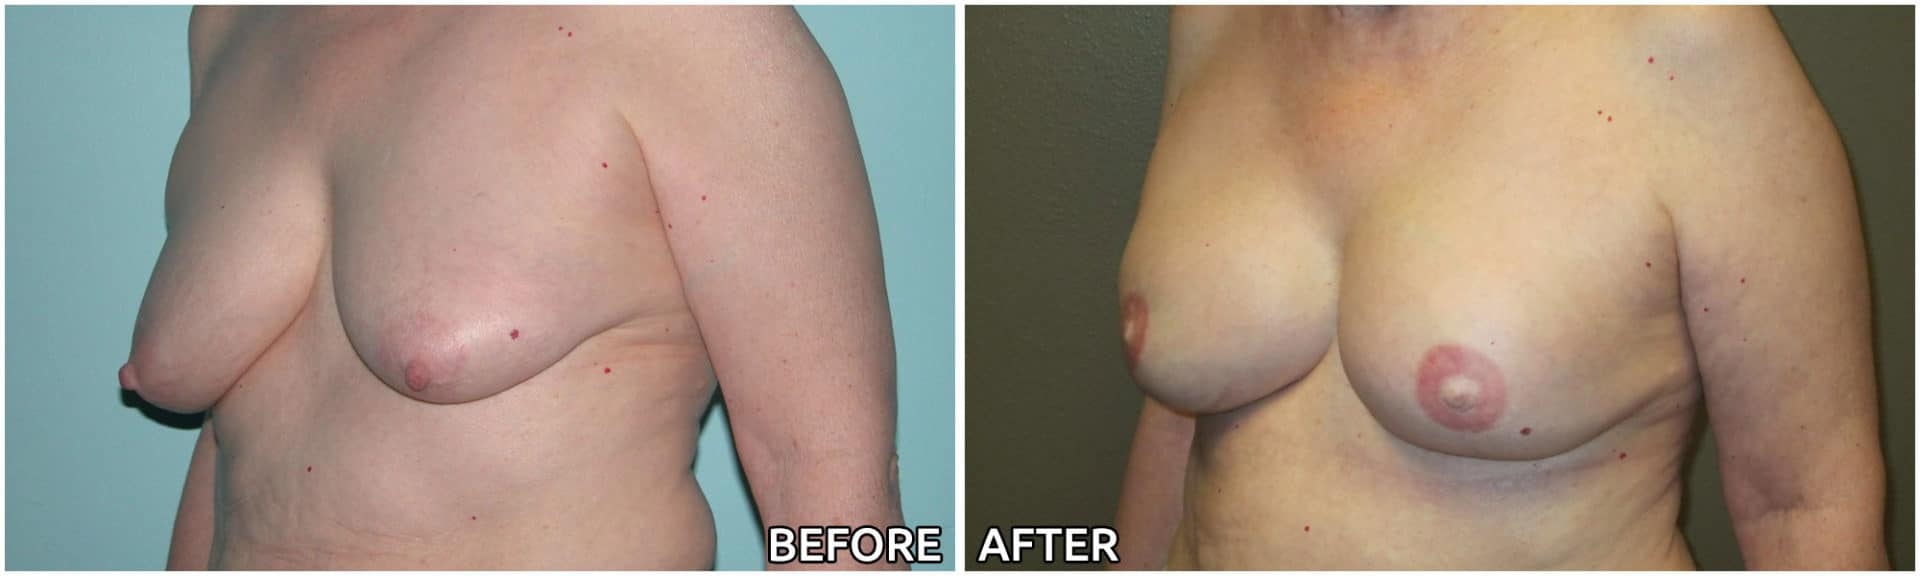 breast-reconstruction2